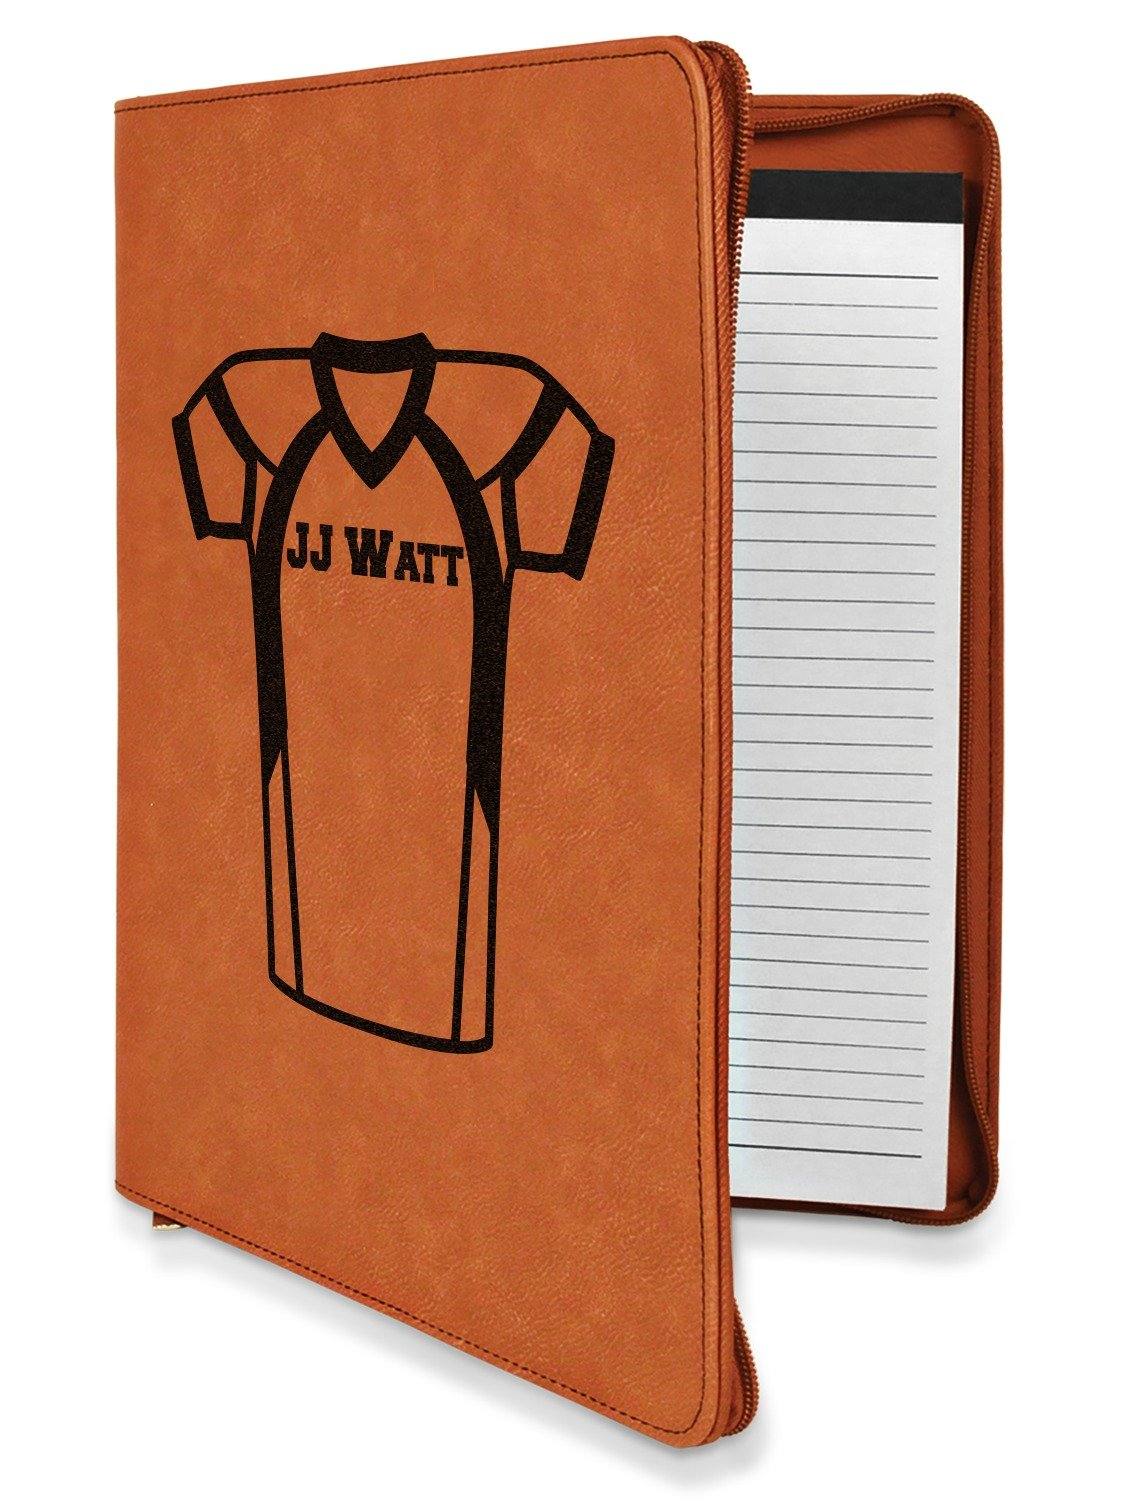 Football Jersey Leatherette Zipper Portfolio with Notepad - Double Sided (Personalized)